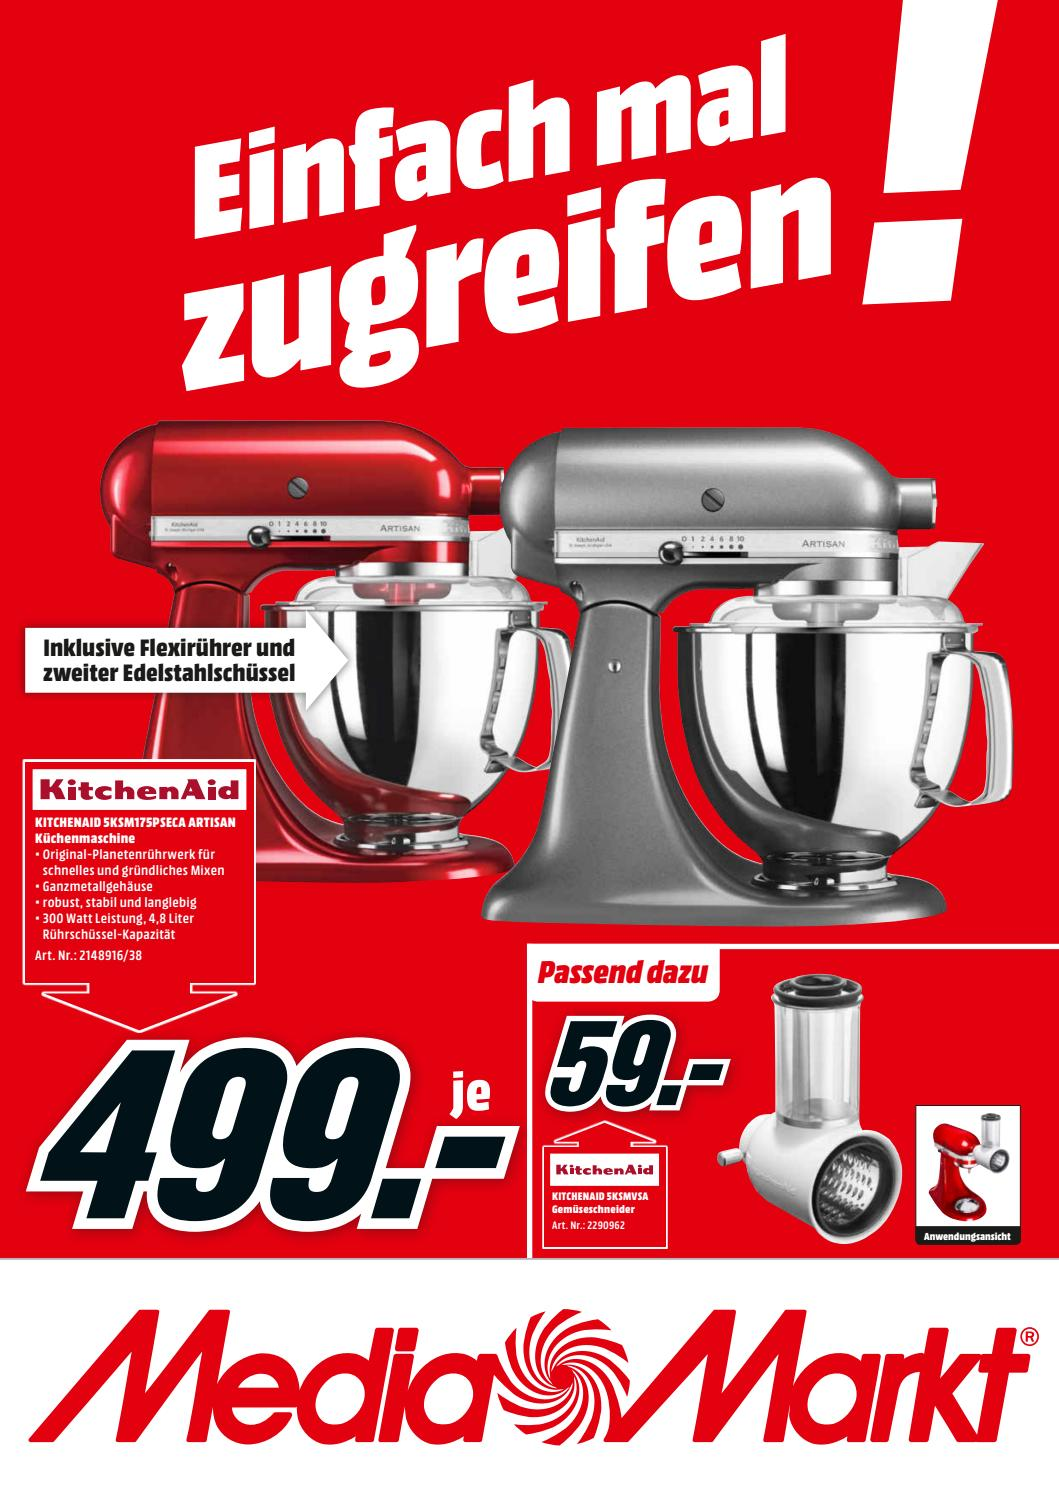 Robot Cocina Media Markt Kitchenaid Küchenmaschine Media Markt